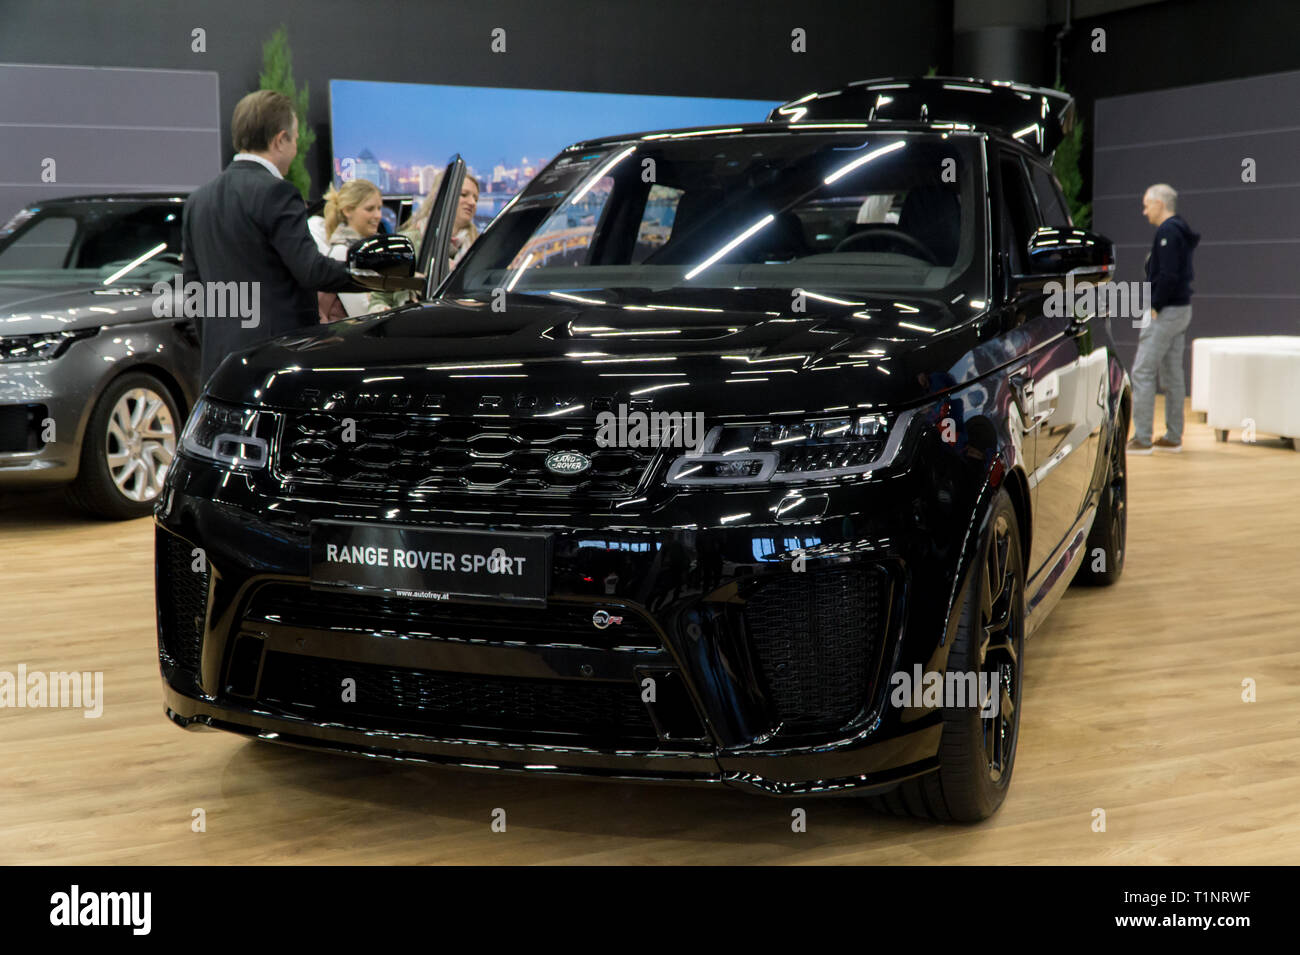 Black Range Rover Sport High Resolution Stock Photography And Images Alamy